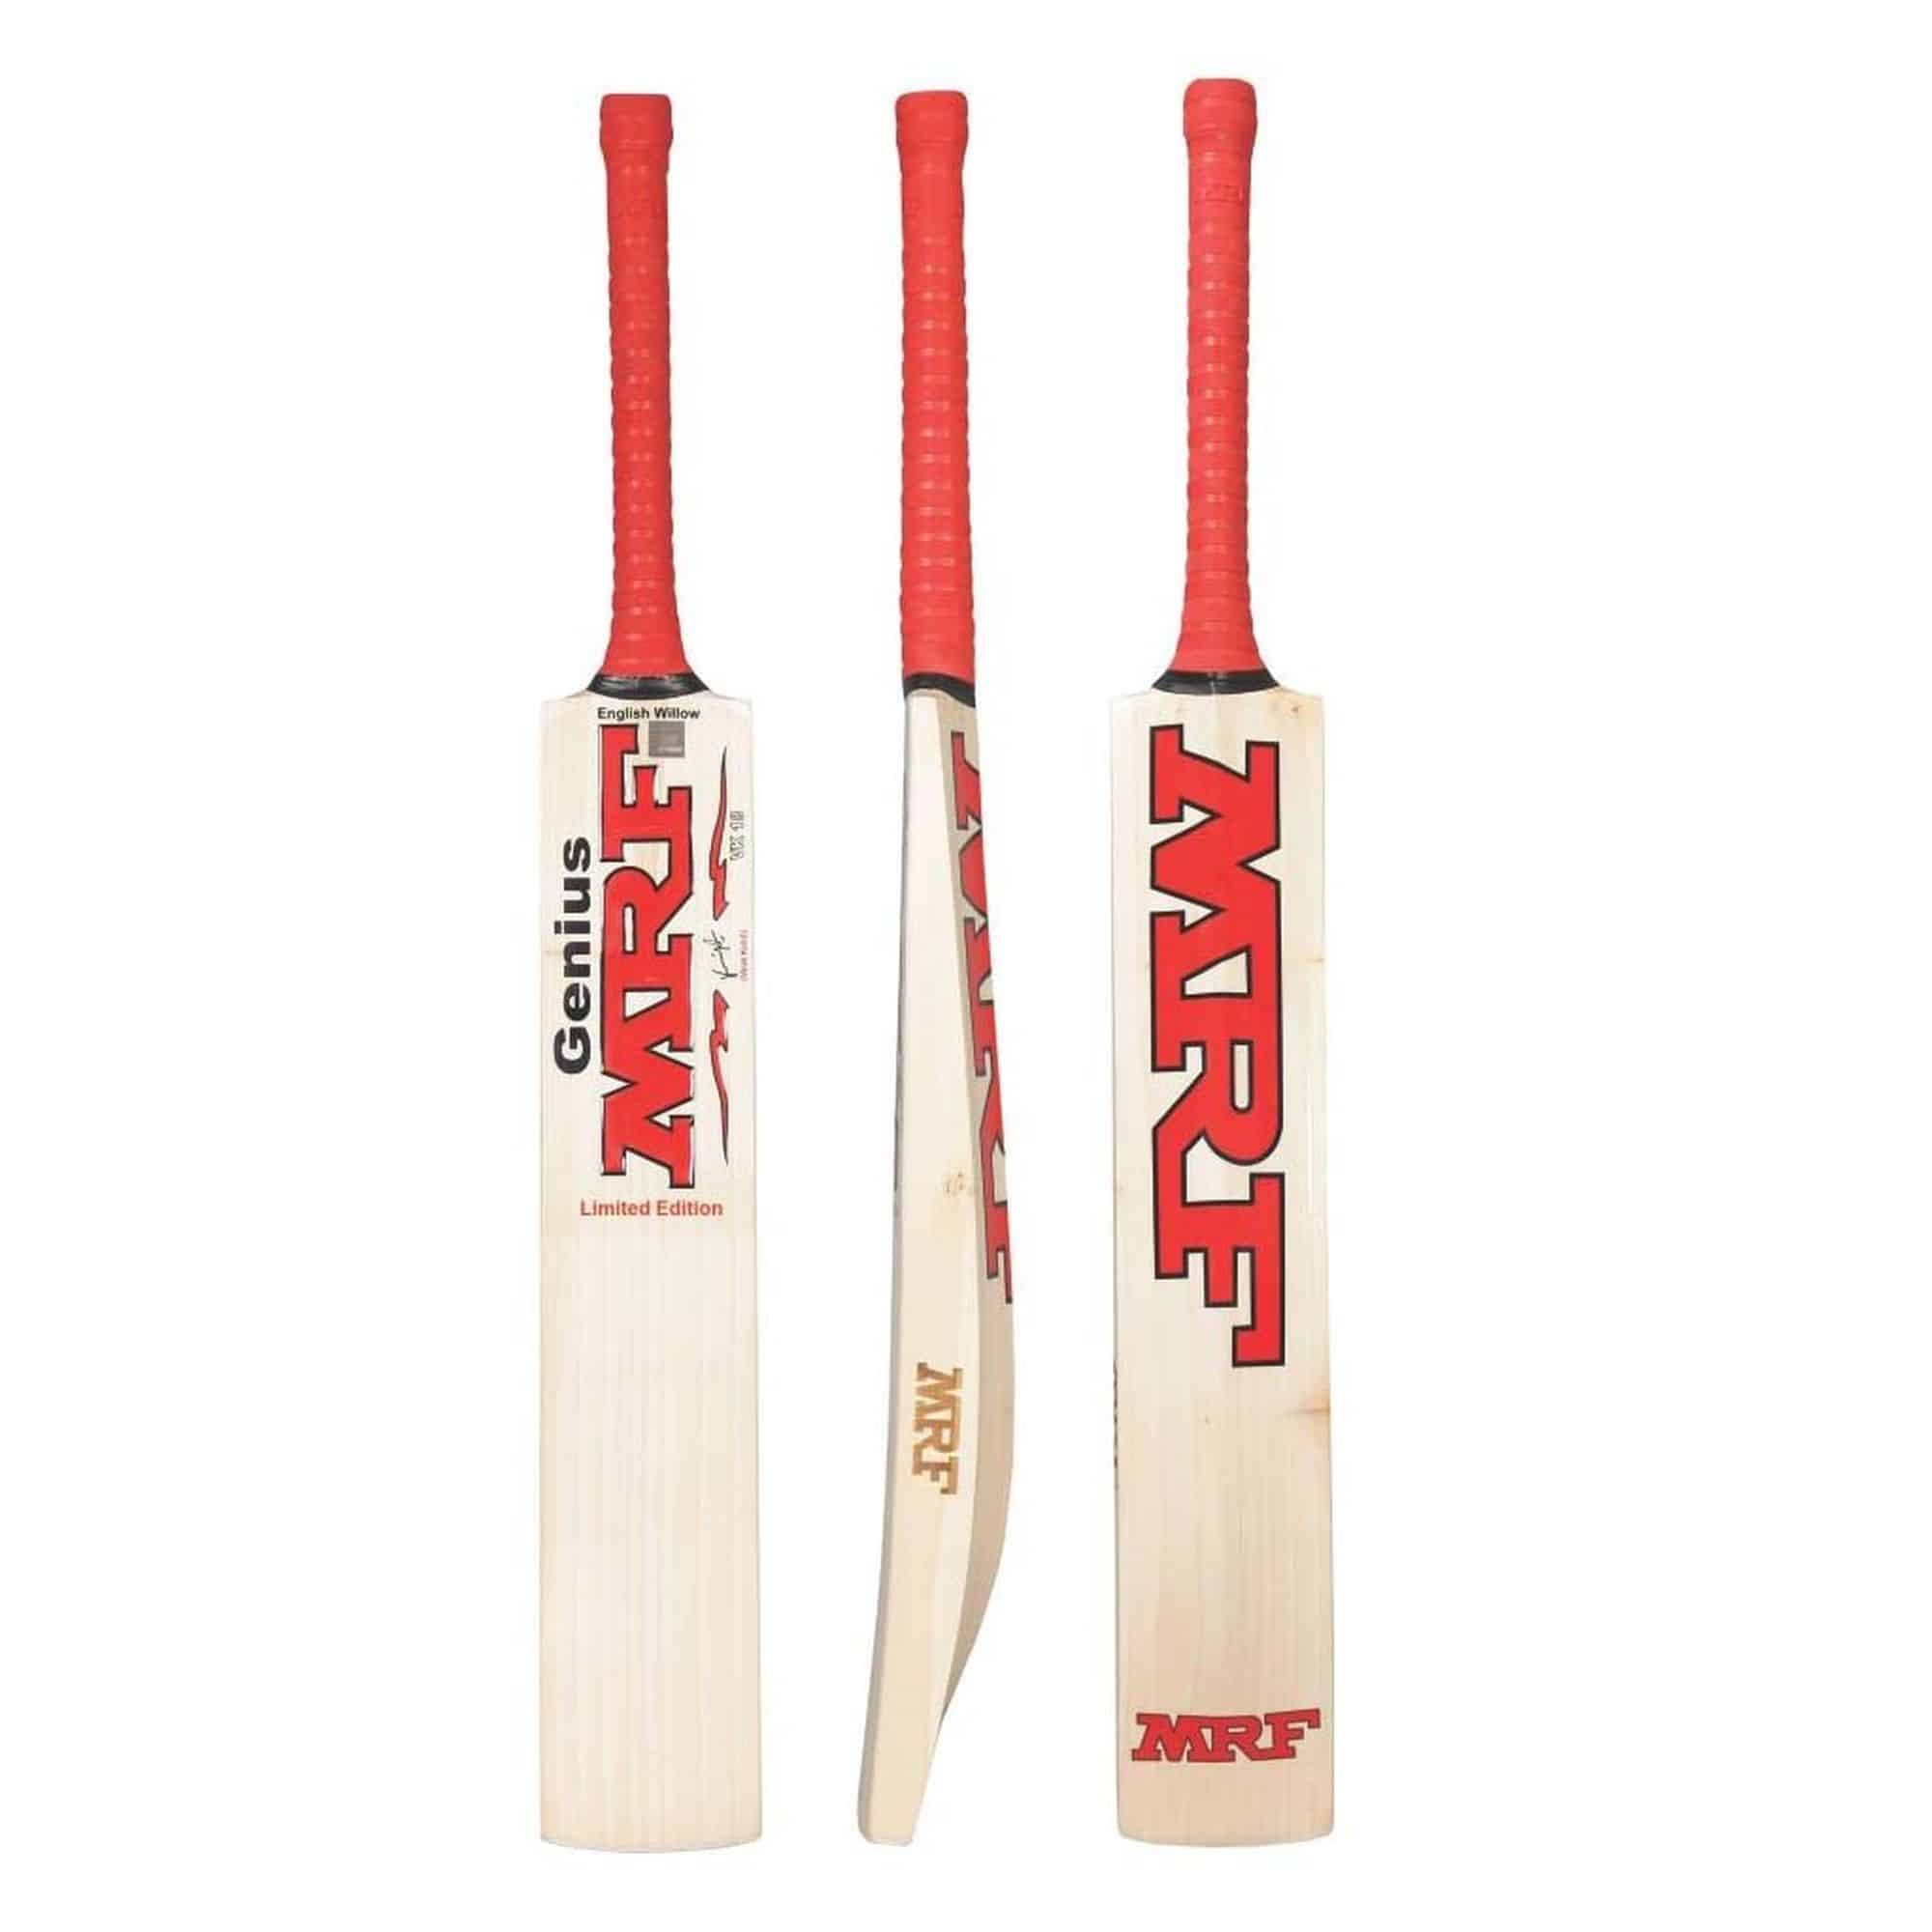 Genius Limited Edition Bat